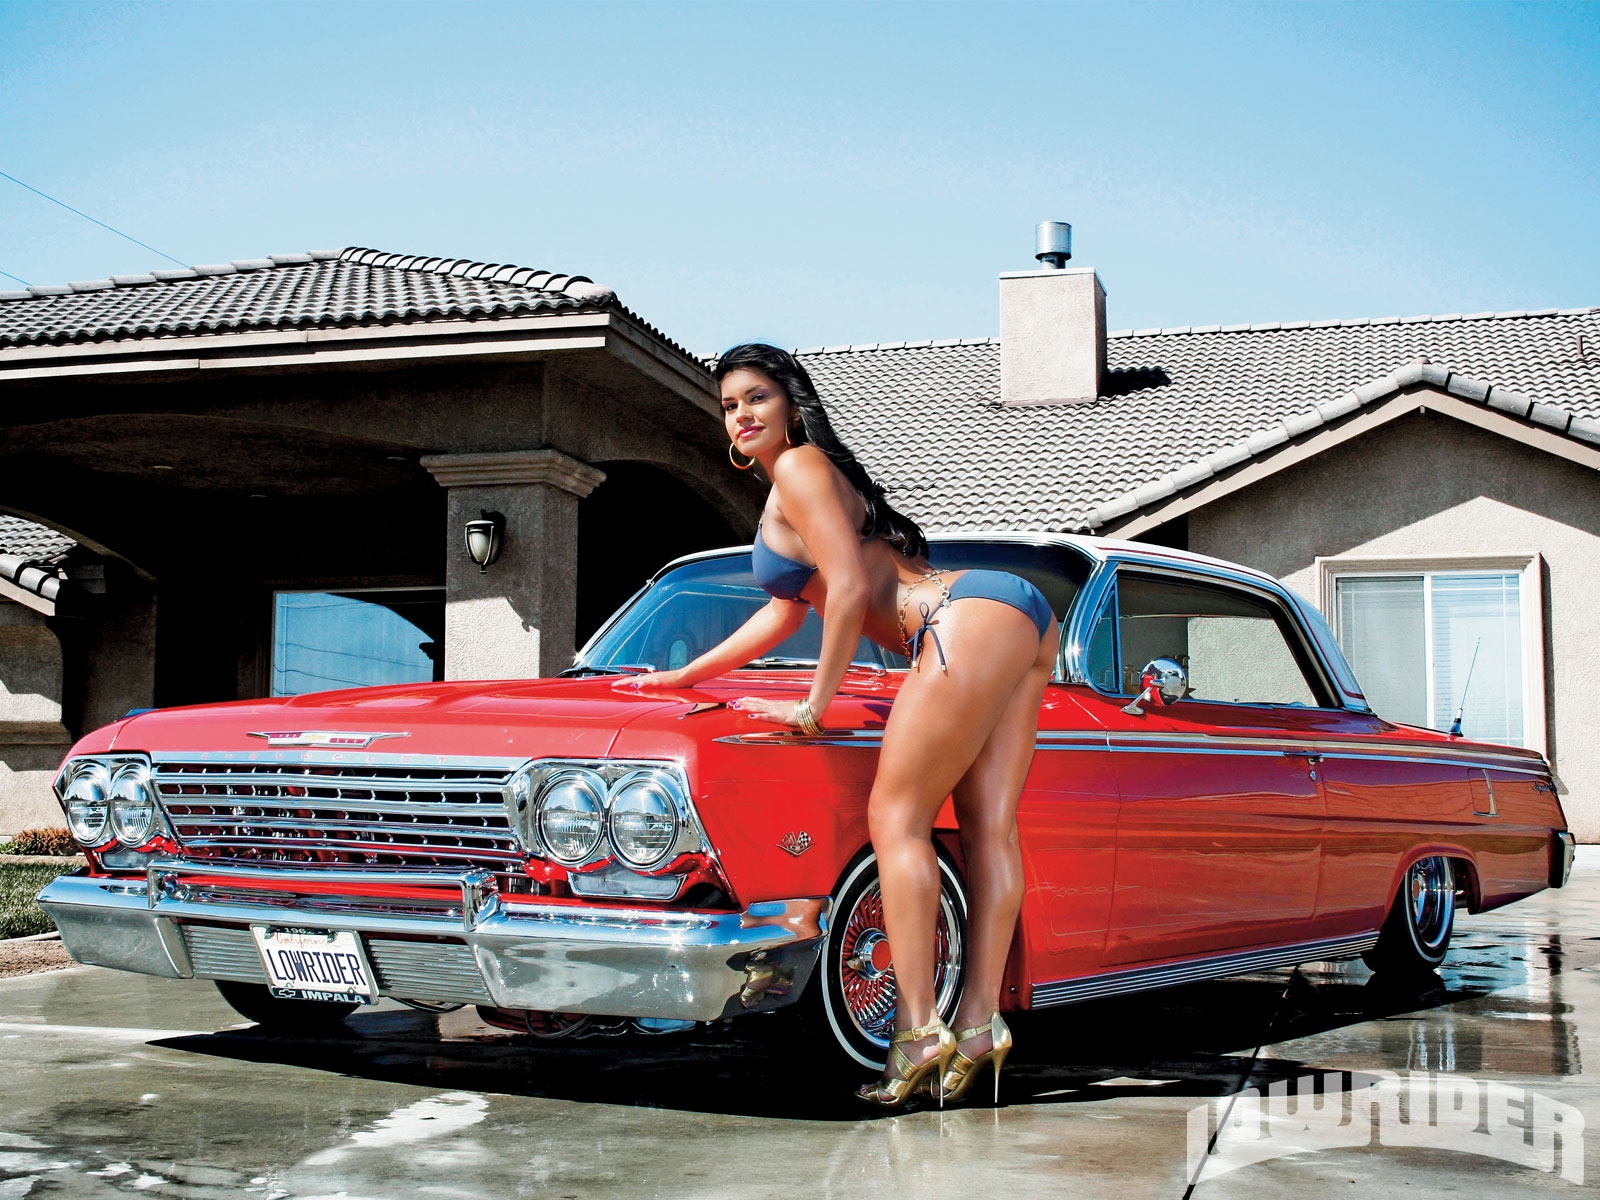 Lowrider Car Wallpaper   All Car Wallpaper